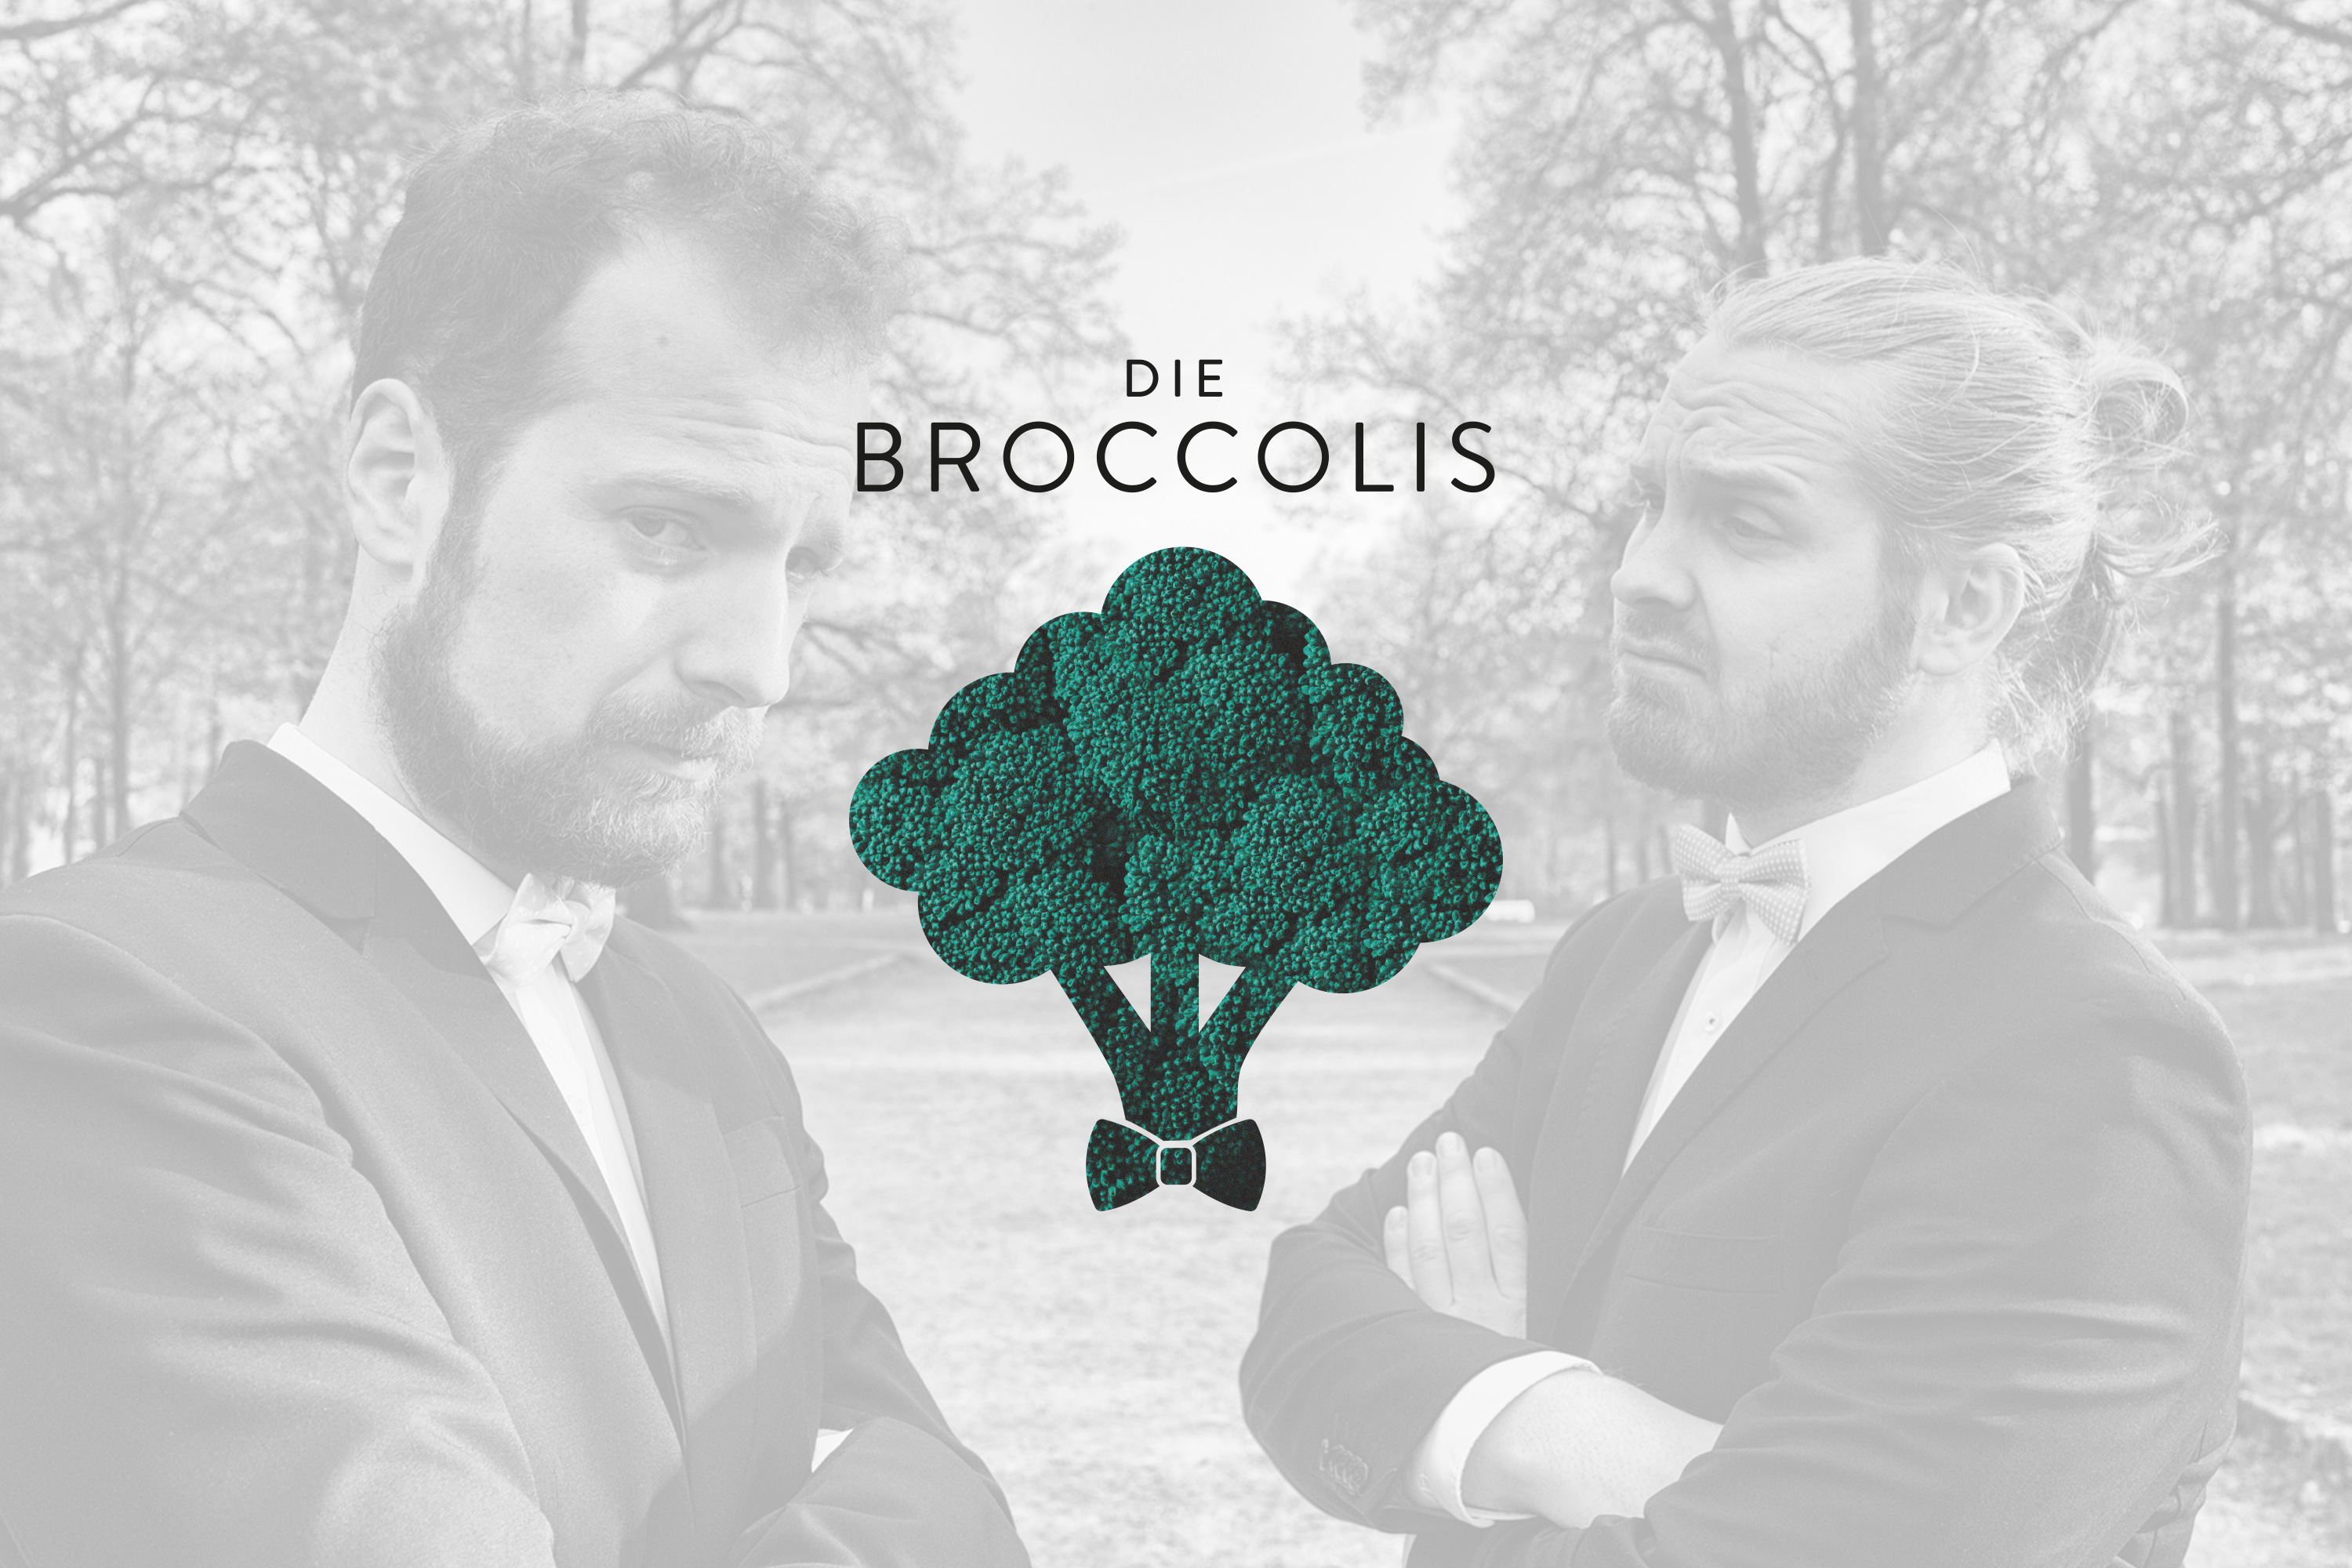 Die Broccolis